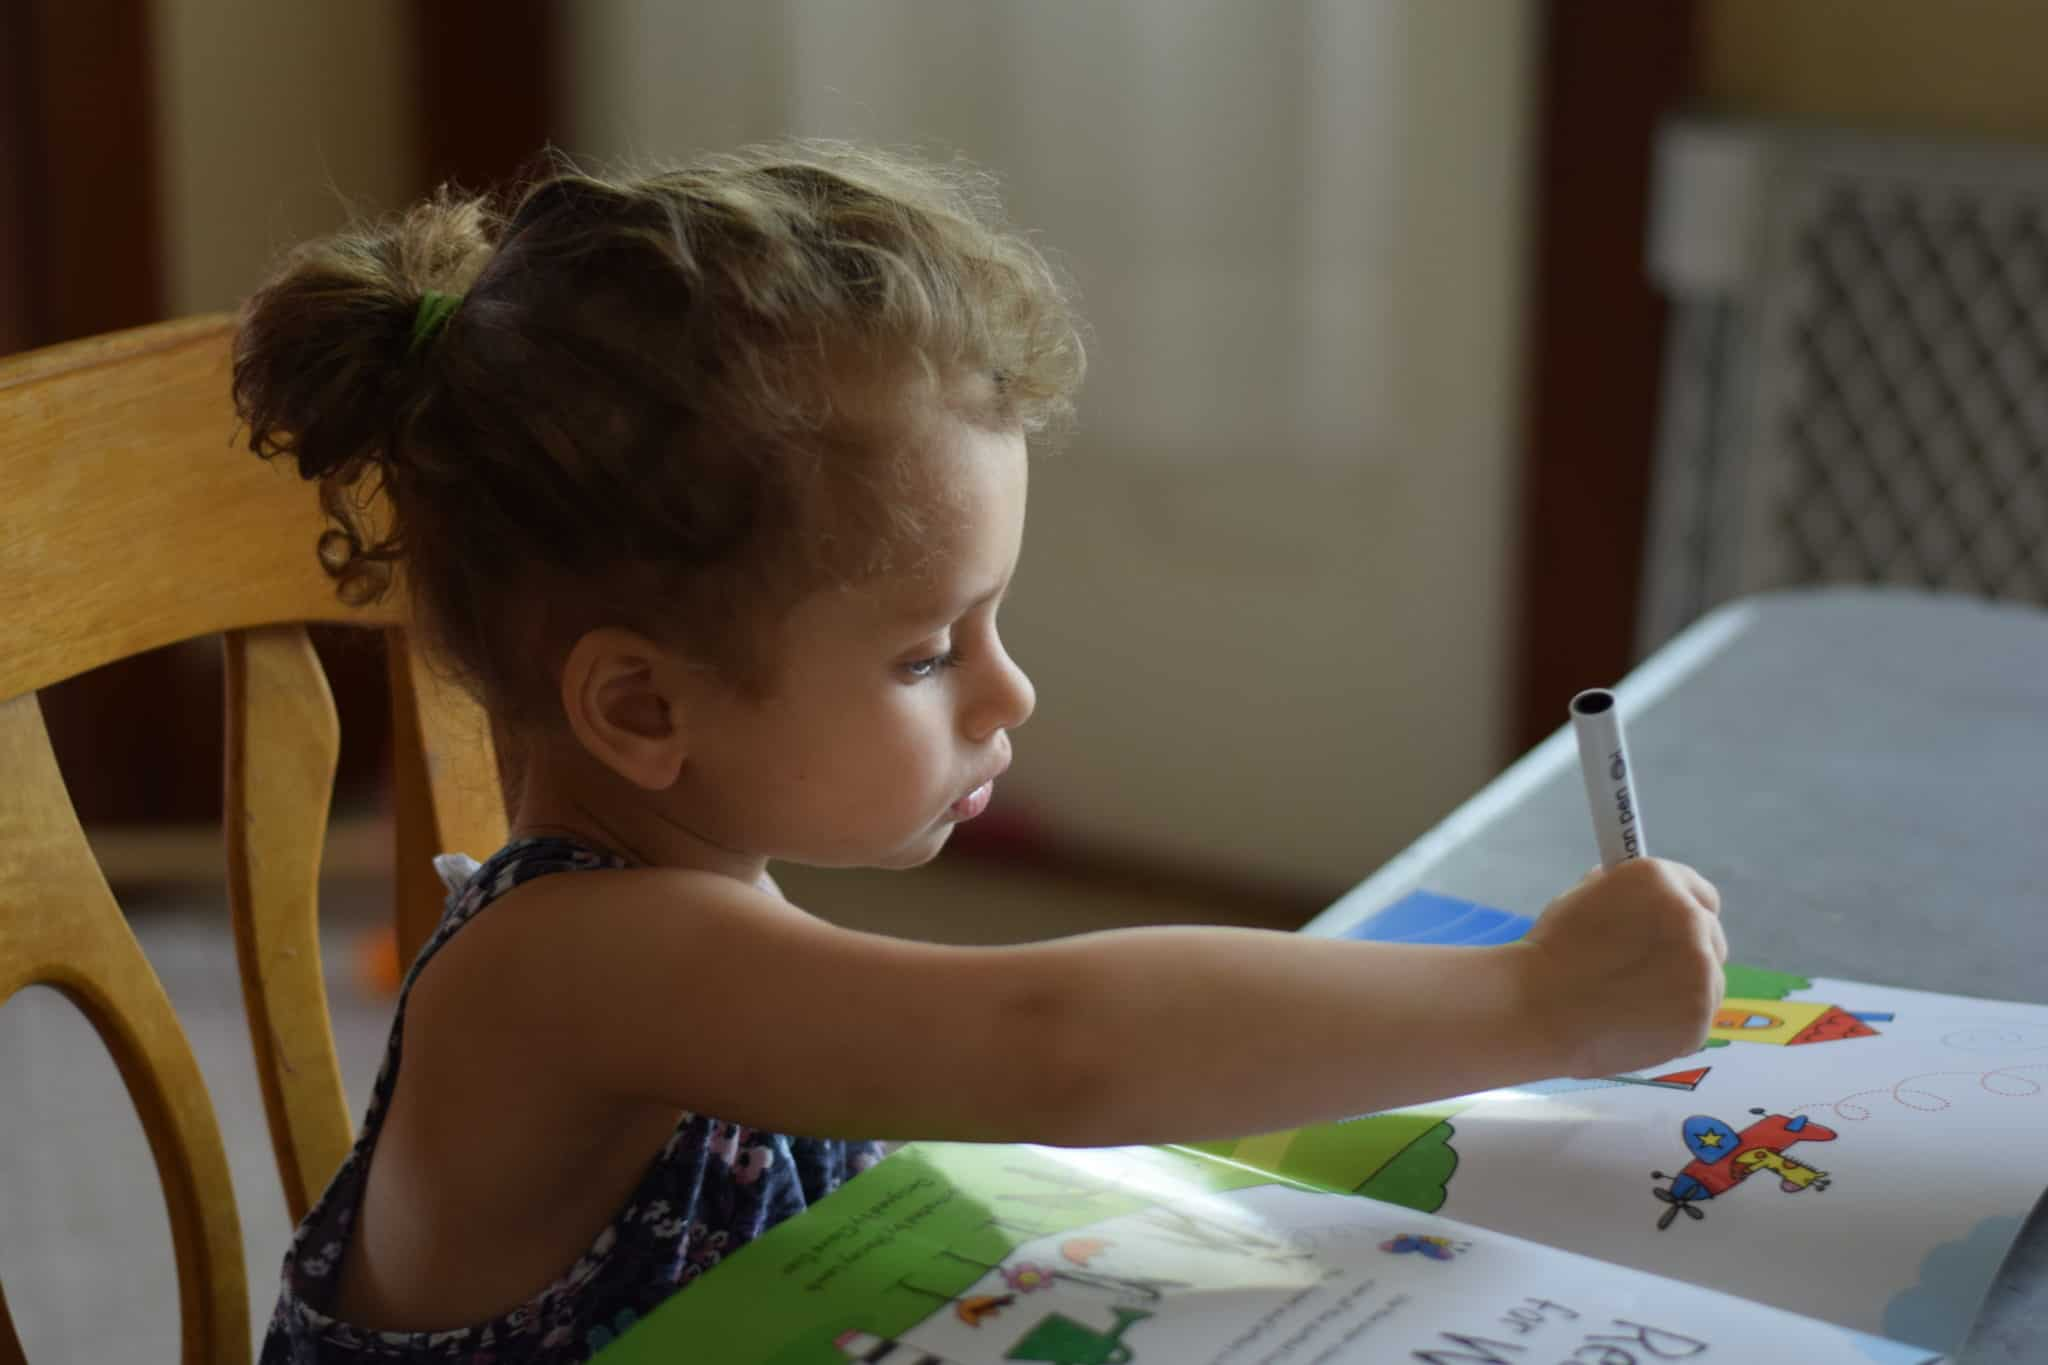 little girl sitting at a table doing school work